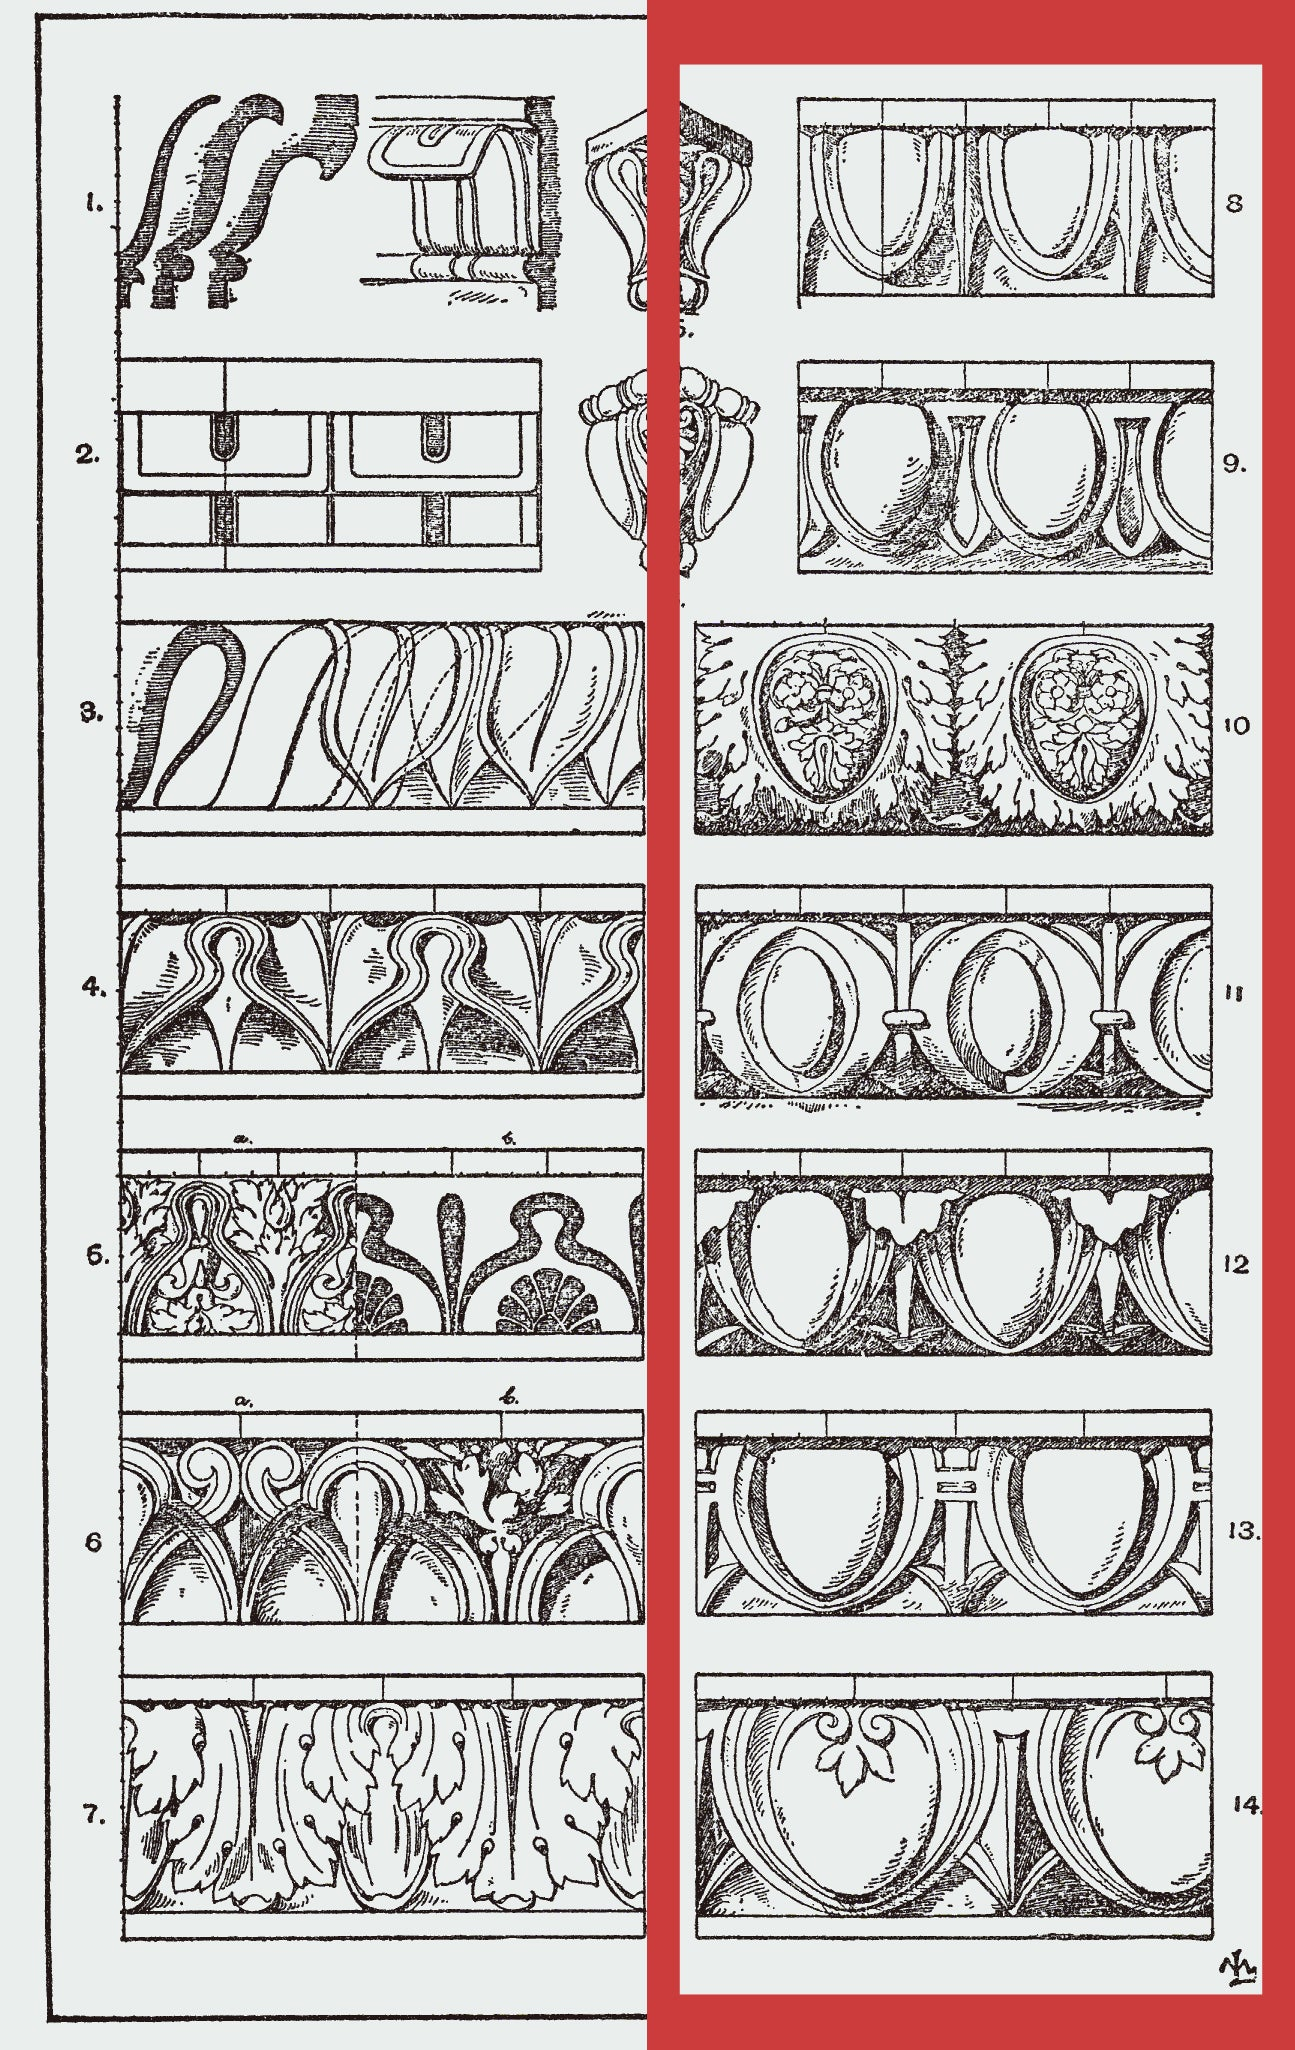 egg and dart molding sketches for brockwell incorporated's illustrated glossary of classical architectural terms